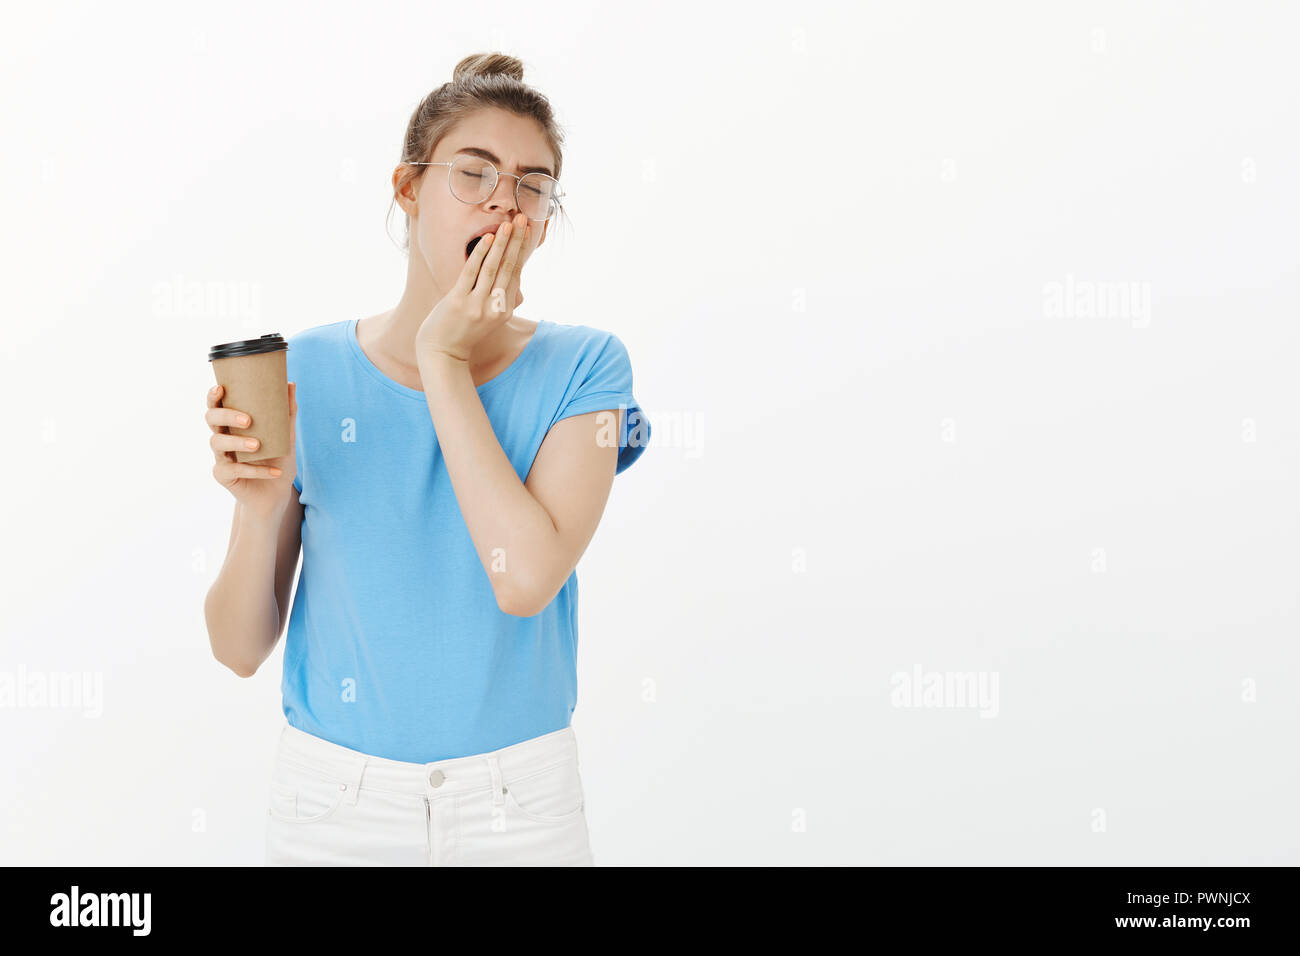 Tied of working hard all day. Portrait of exhausted good-looking female in glasses and bun hairstyle, yawning and covering opened mouth with palm, closing eyes and holding cup of coffee in morning - Stock Image